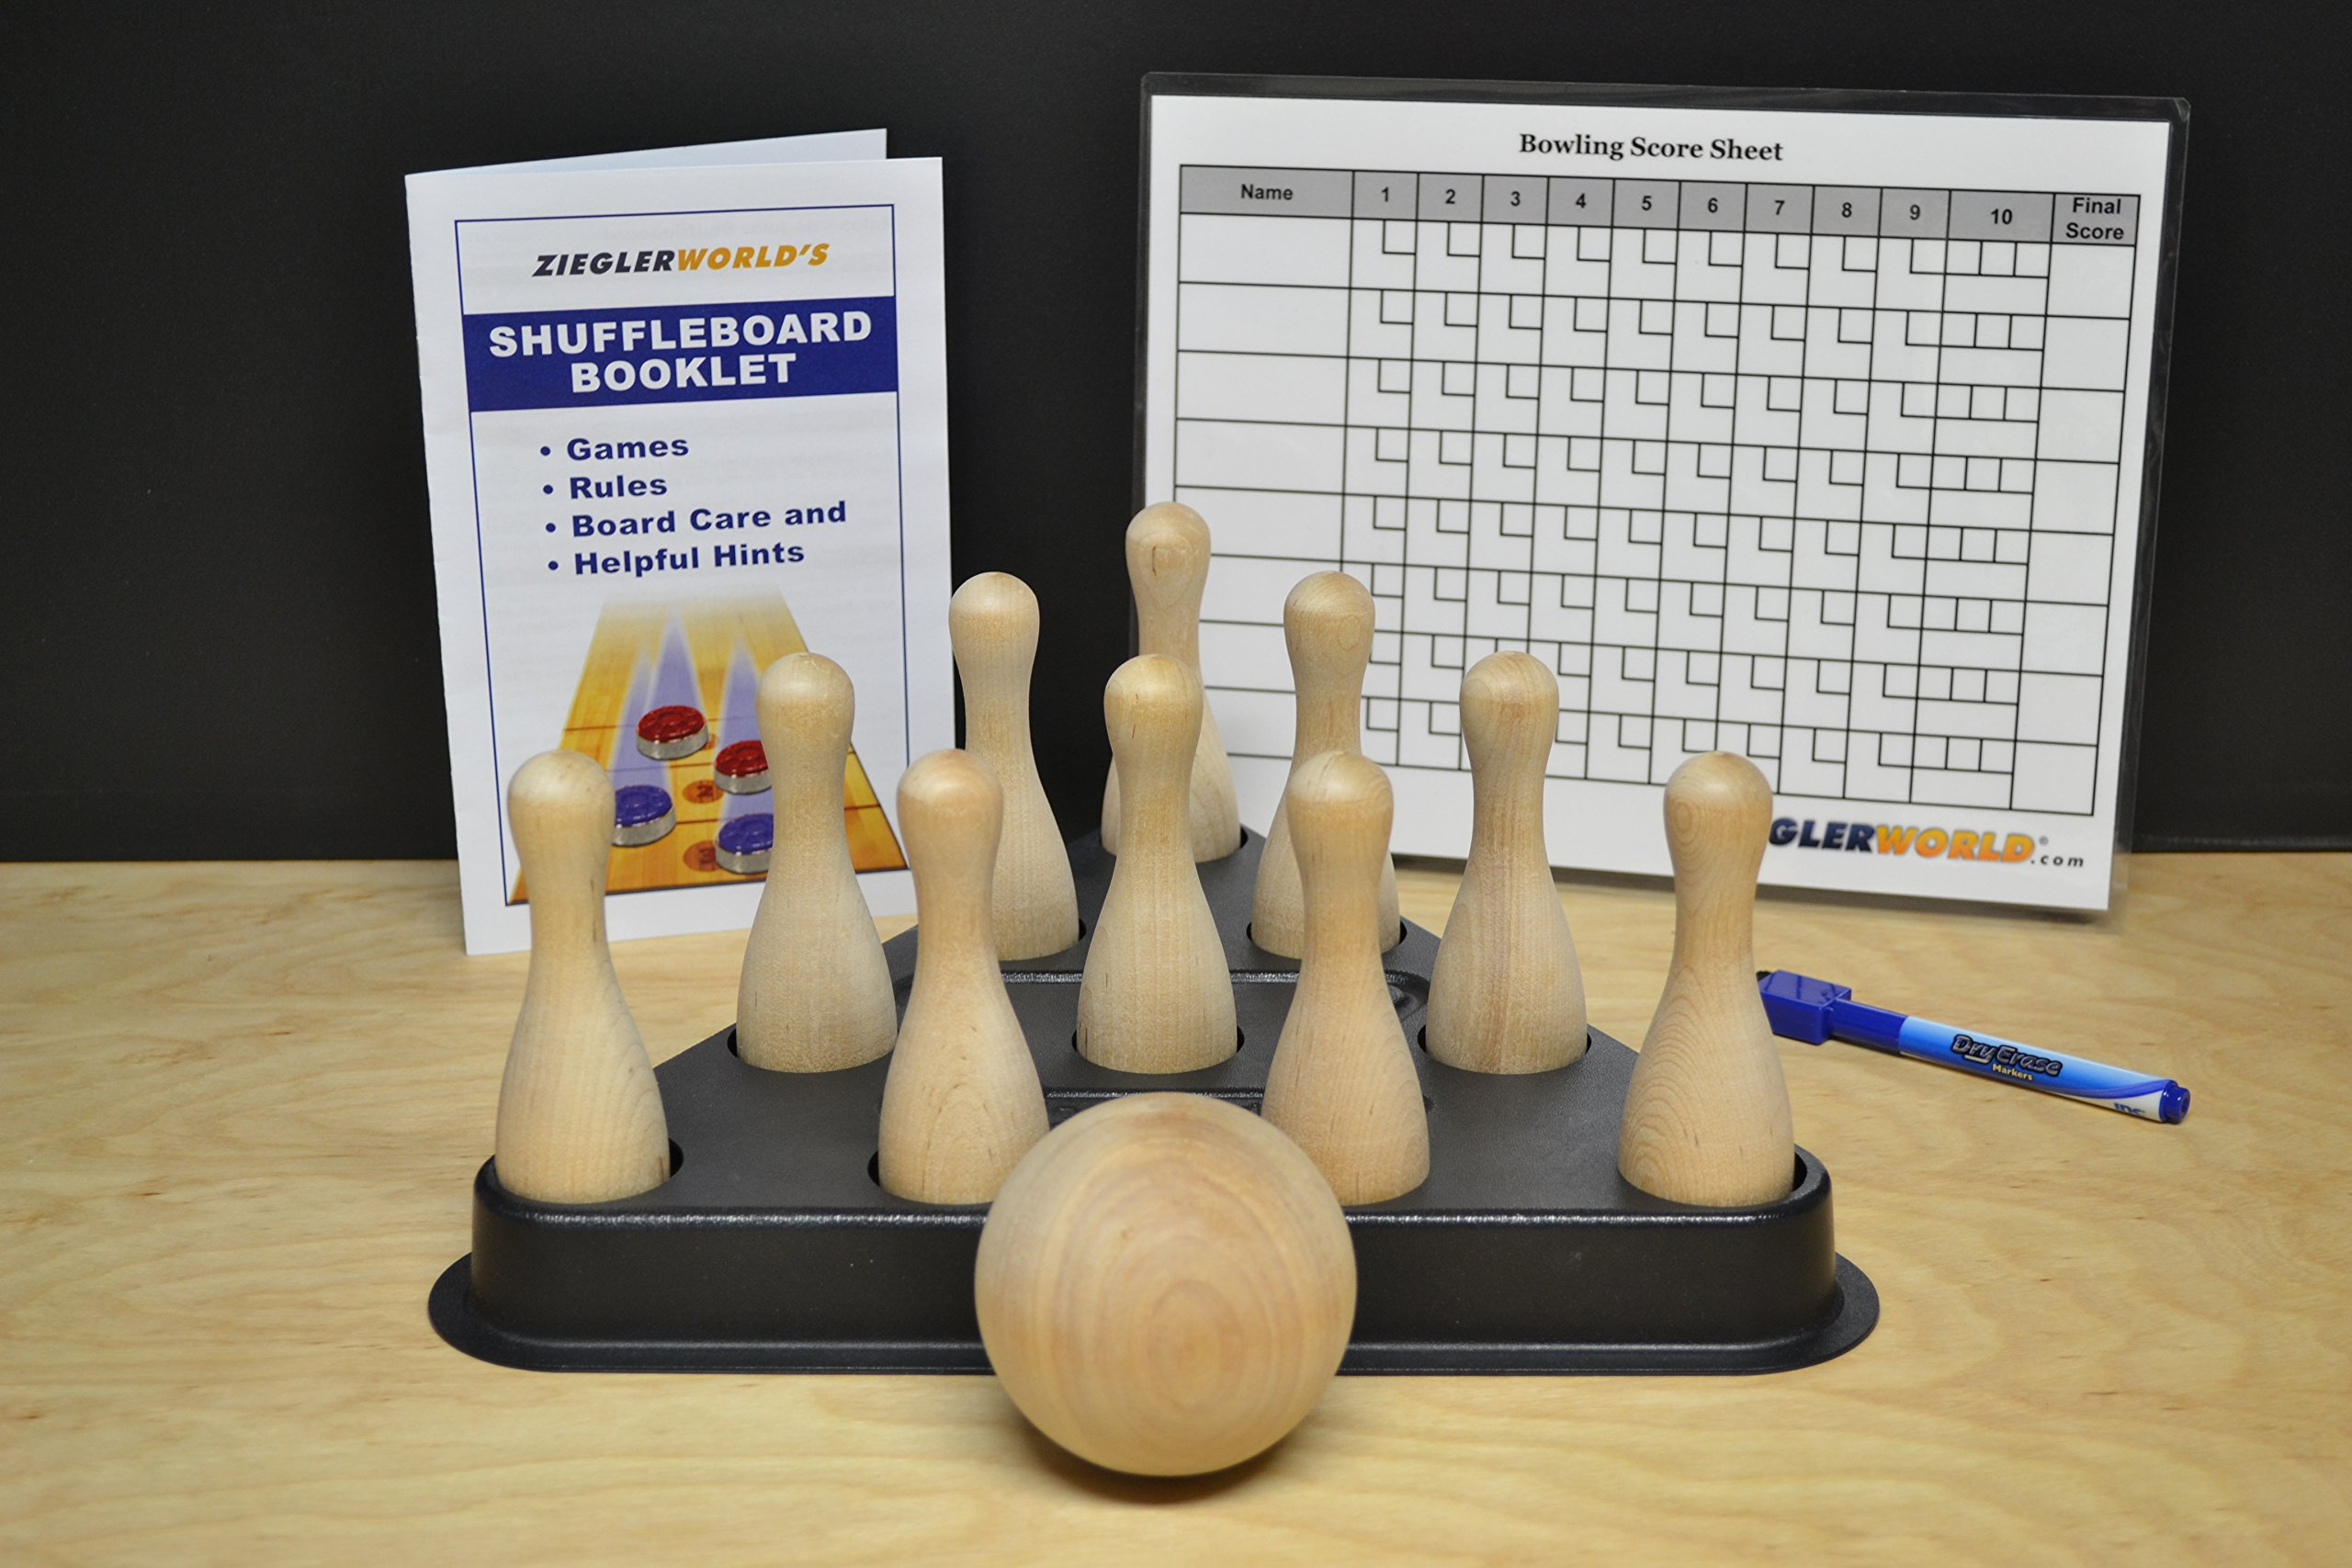 Table Shuffleboard Bowling Brown Pins - Pinsetter - Rules Booklet - Score Chart - Carrier Bag & Wood Ball